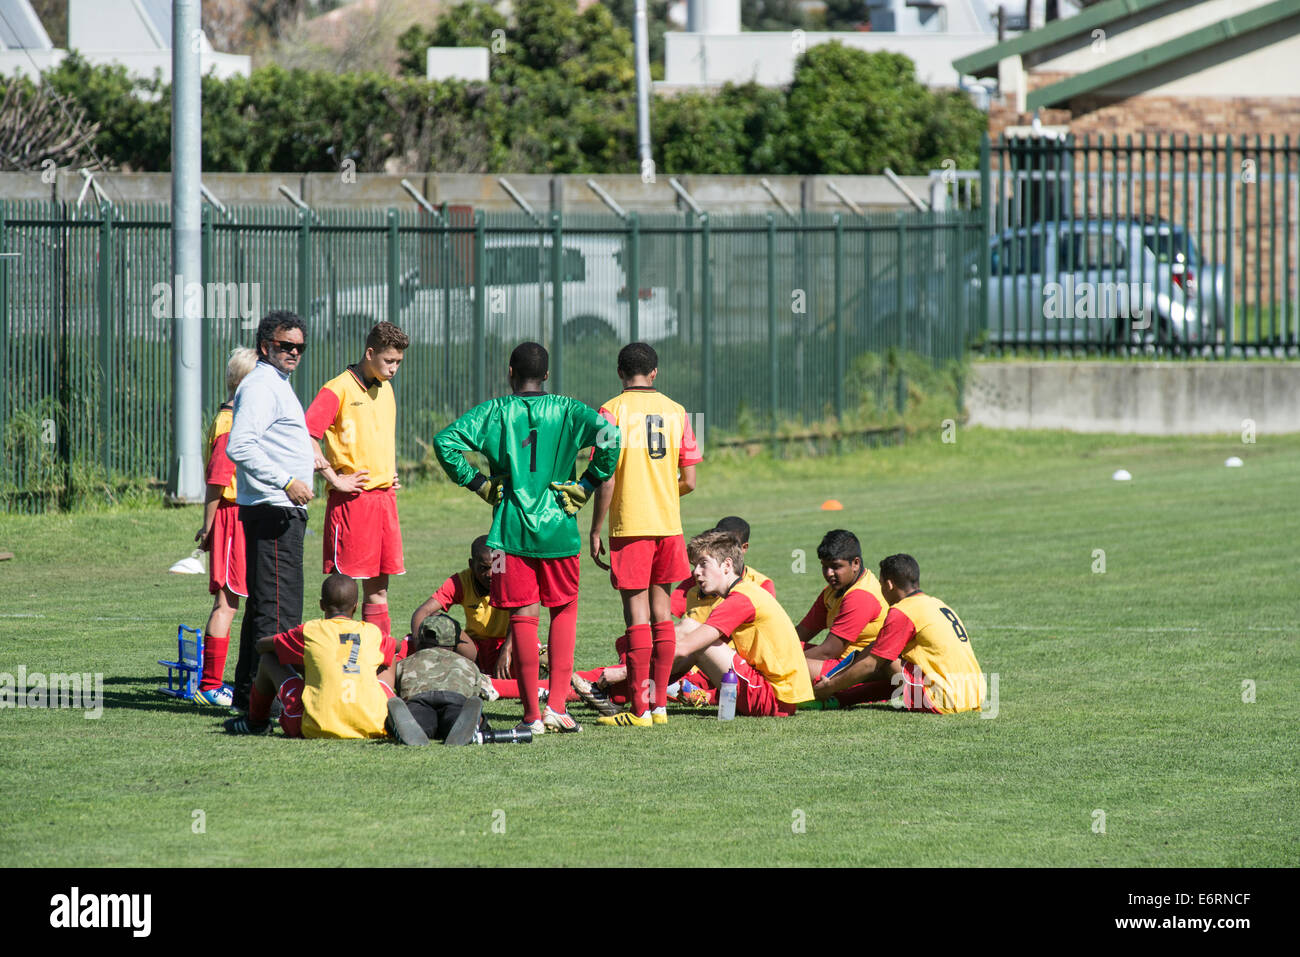 Coach and U15 football team during half time break, Cape Town, South Africa - Stock Image